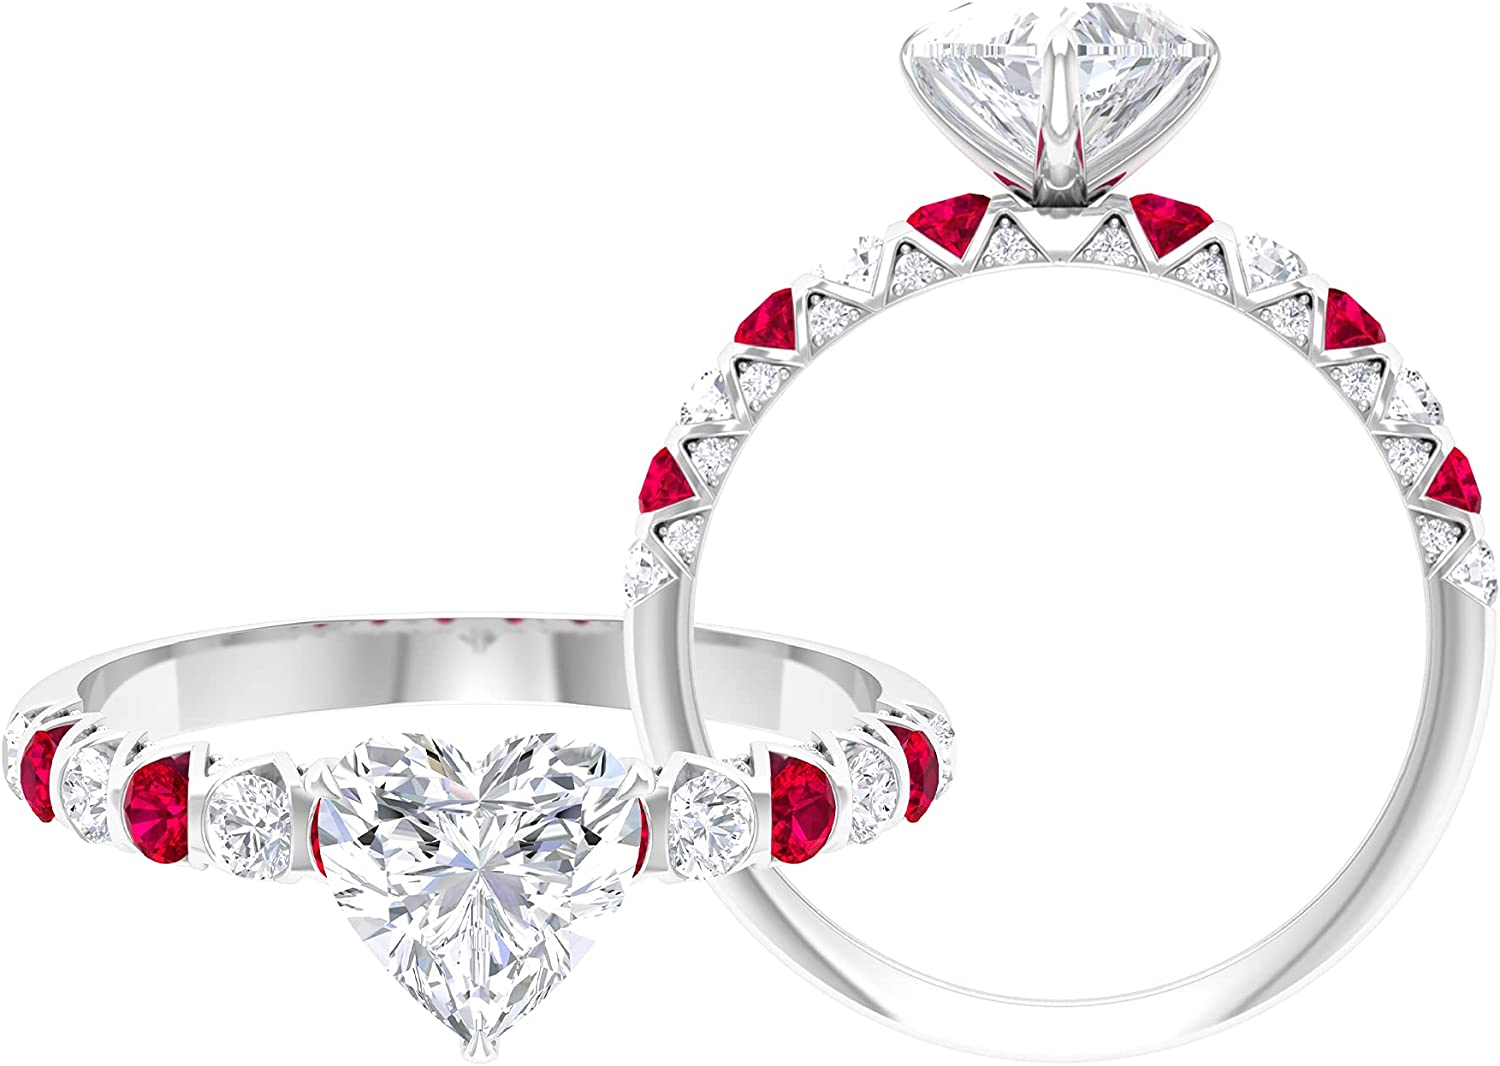 2 CT Heart Cut Solitaire Moissanite and Created Ruby Ring,14K White Gold,Moissanite,Size:US 8.50